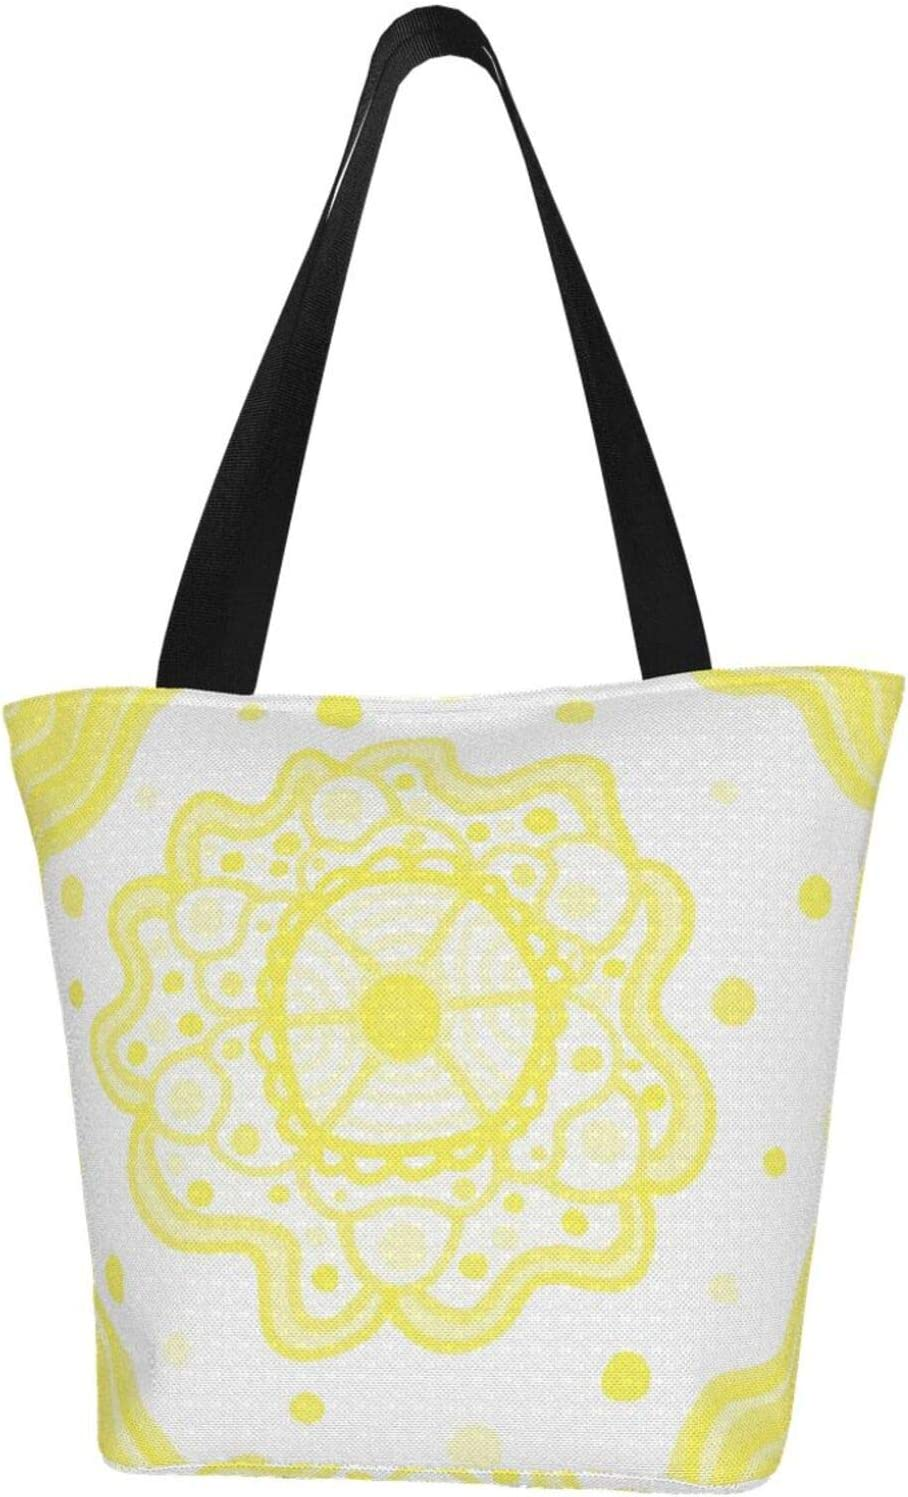 Sale Special Price AKLID Yellow Floral Extra Large Tote In stock Resistant Bag Water Canvas